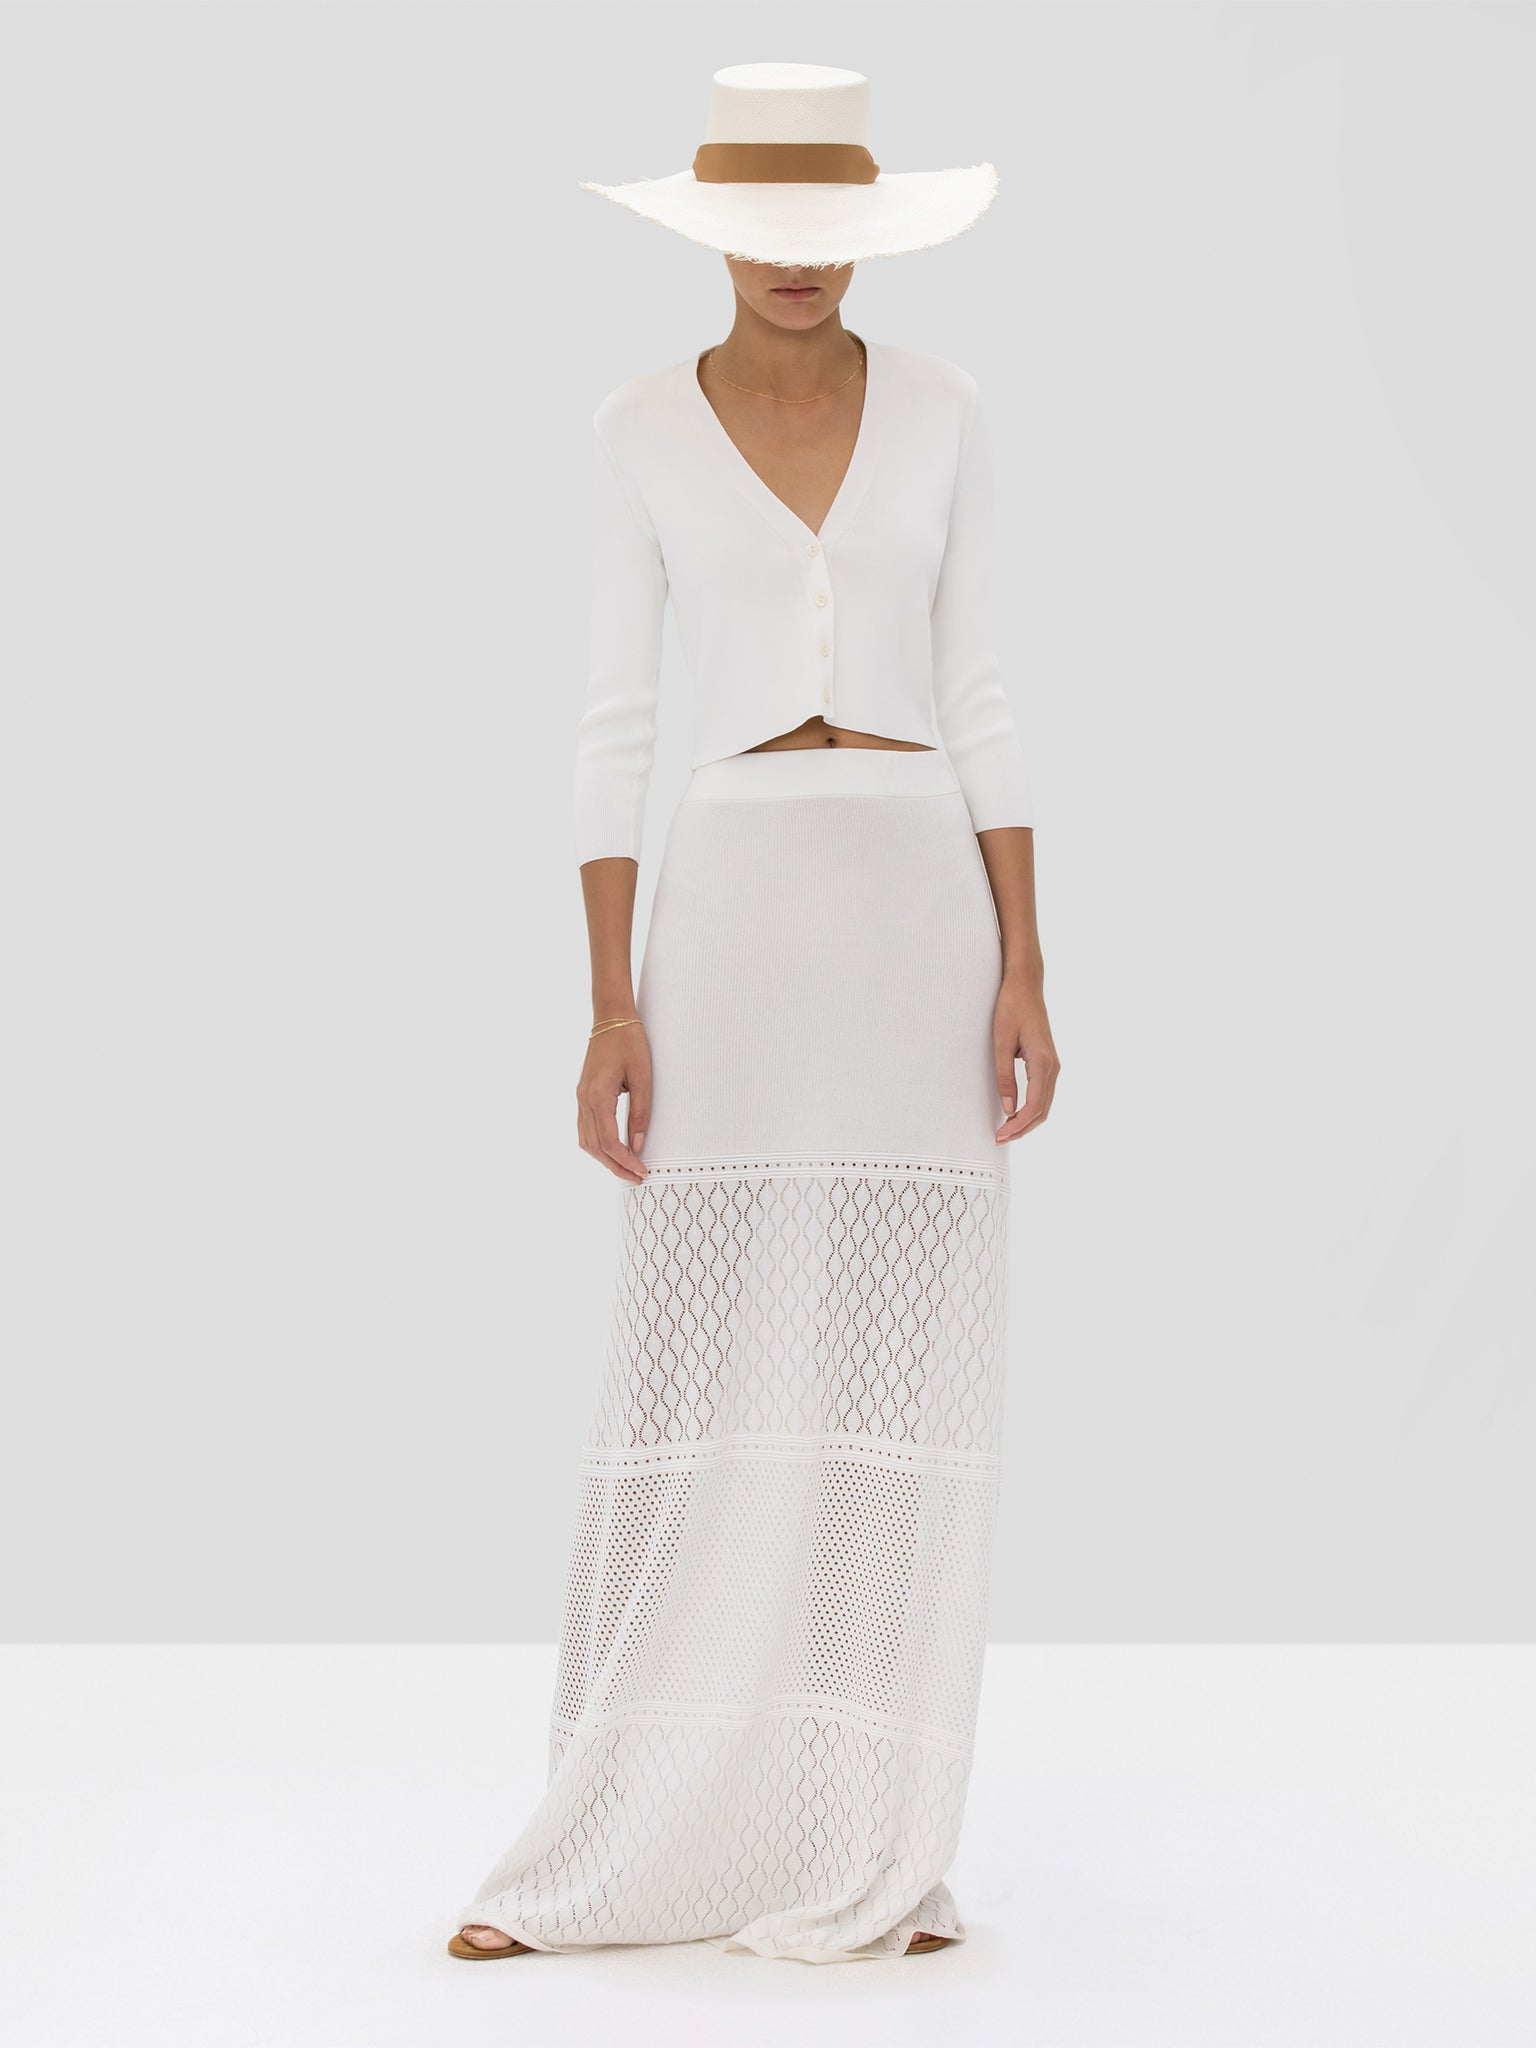 Alexis Petal Cardigan in White and Ecco Skirt in White from the Spring Summer 2020 Collection